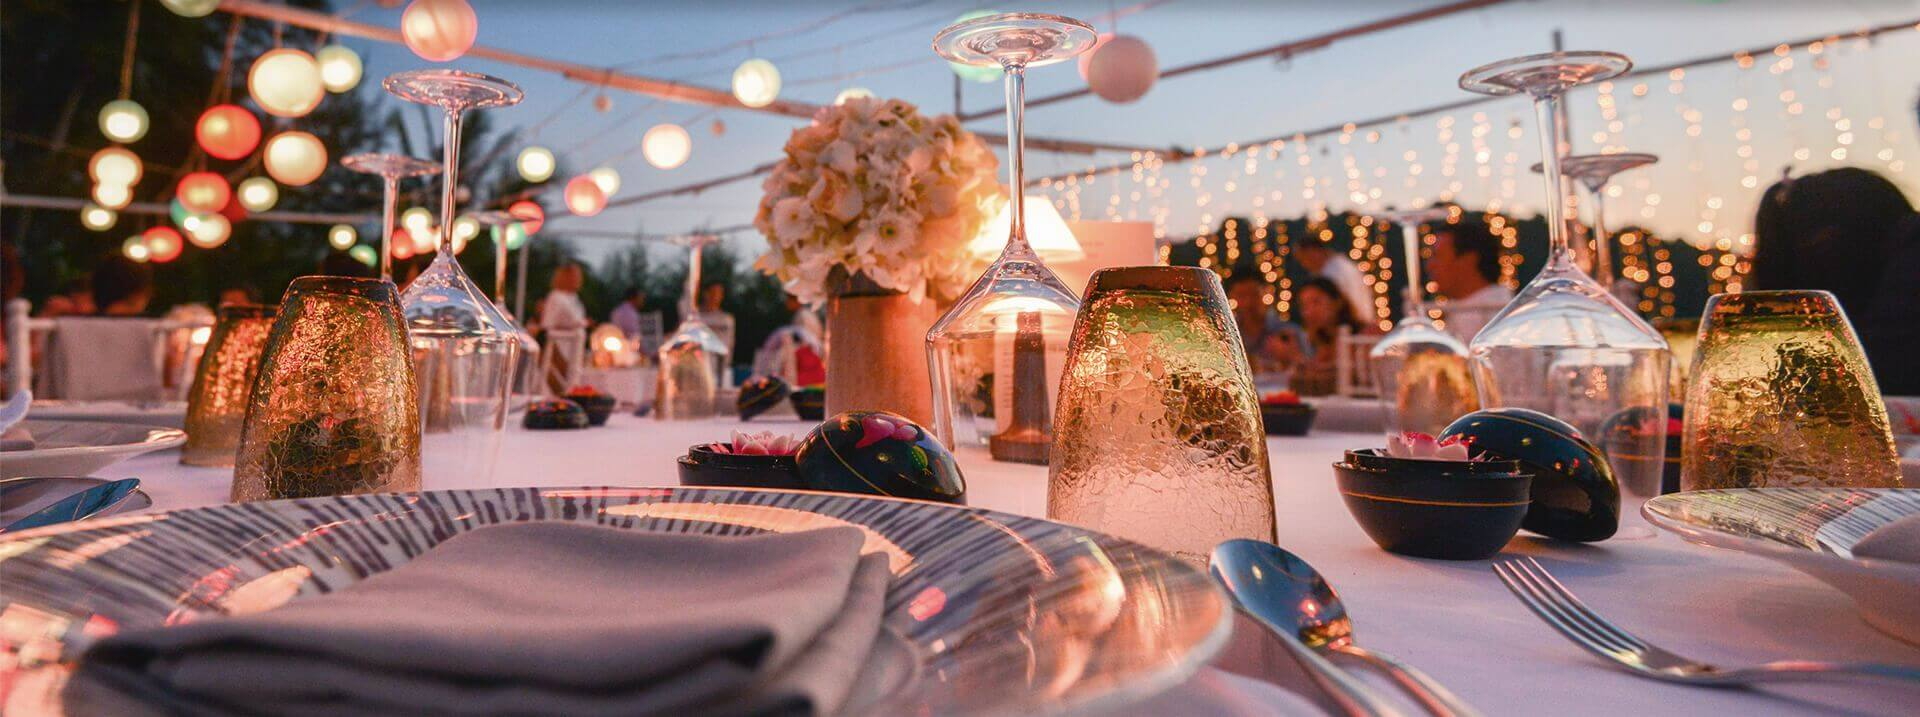 Catering and Event Planning